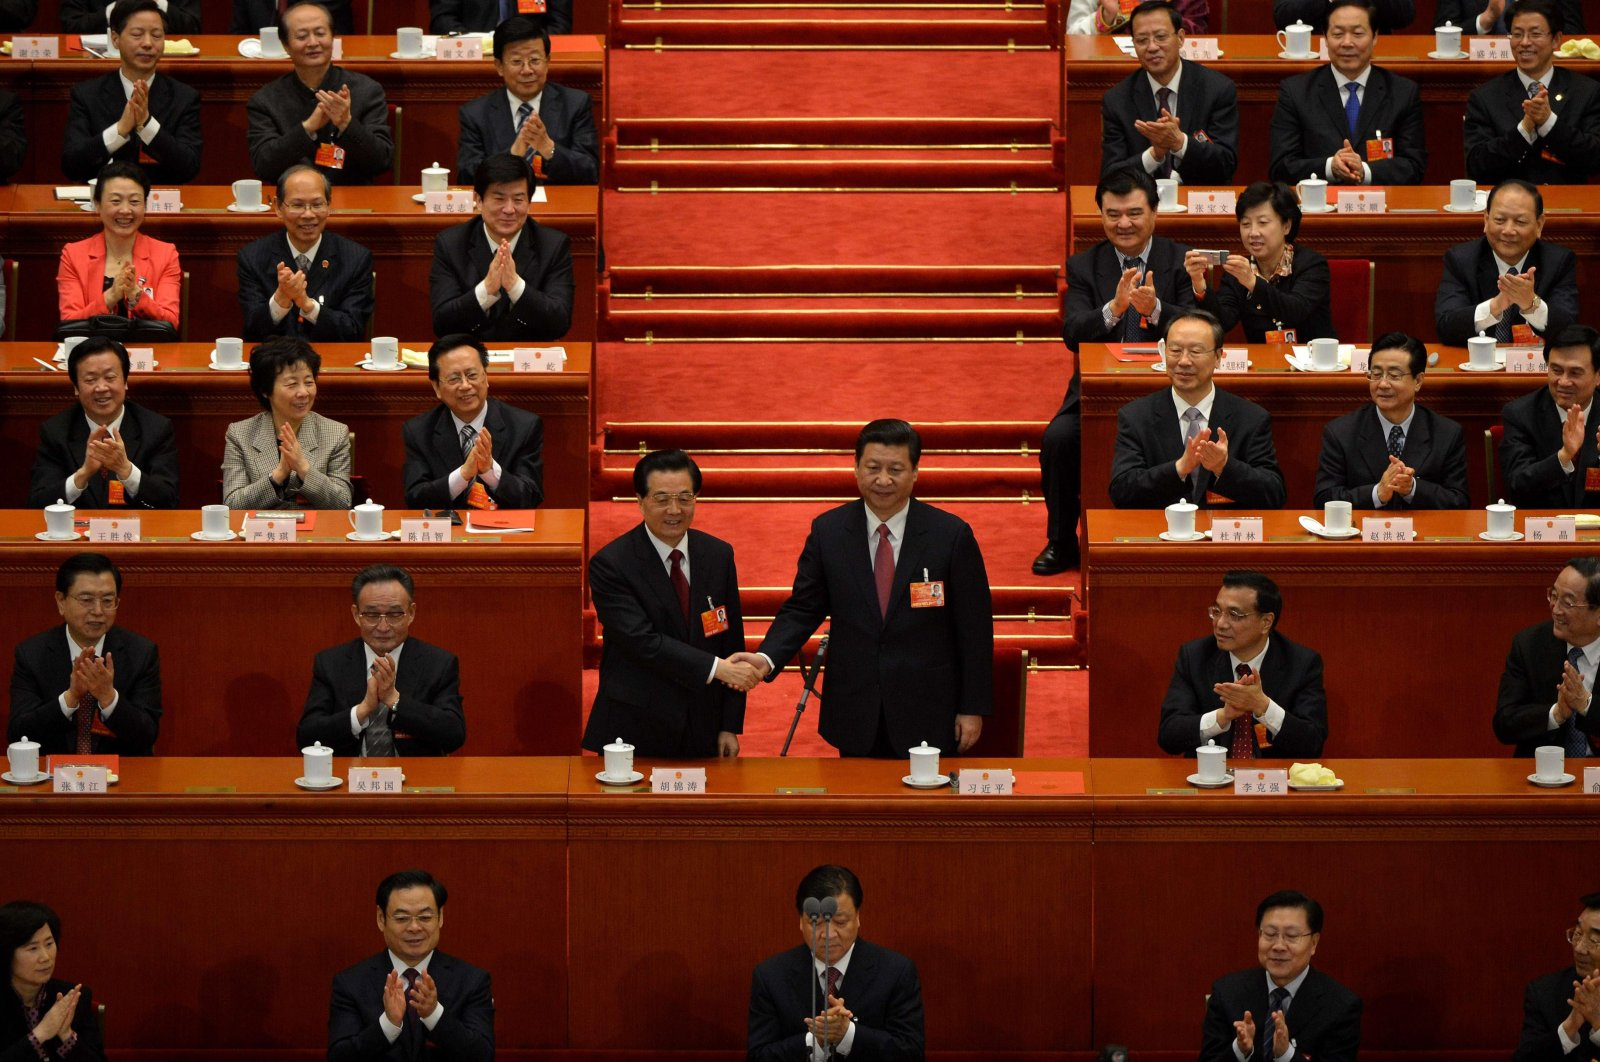 Former President Hu Jintao (L) and newly elected Chinese President Xi Jinping (R) shake hands after the election of the new president of China during the 12th National People's Congress (NPC) in the Great Hall of the People in Beijing, China, March 14, 2013. (AFP Photo)